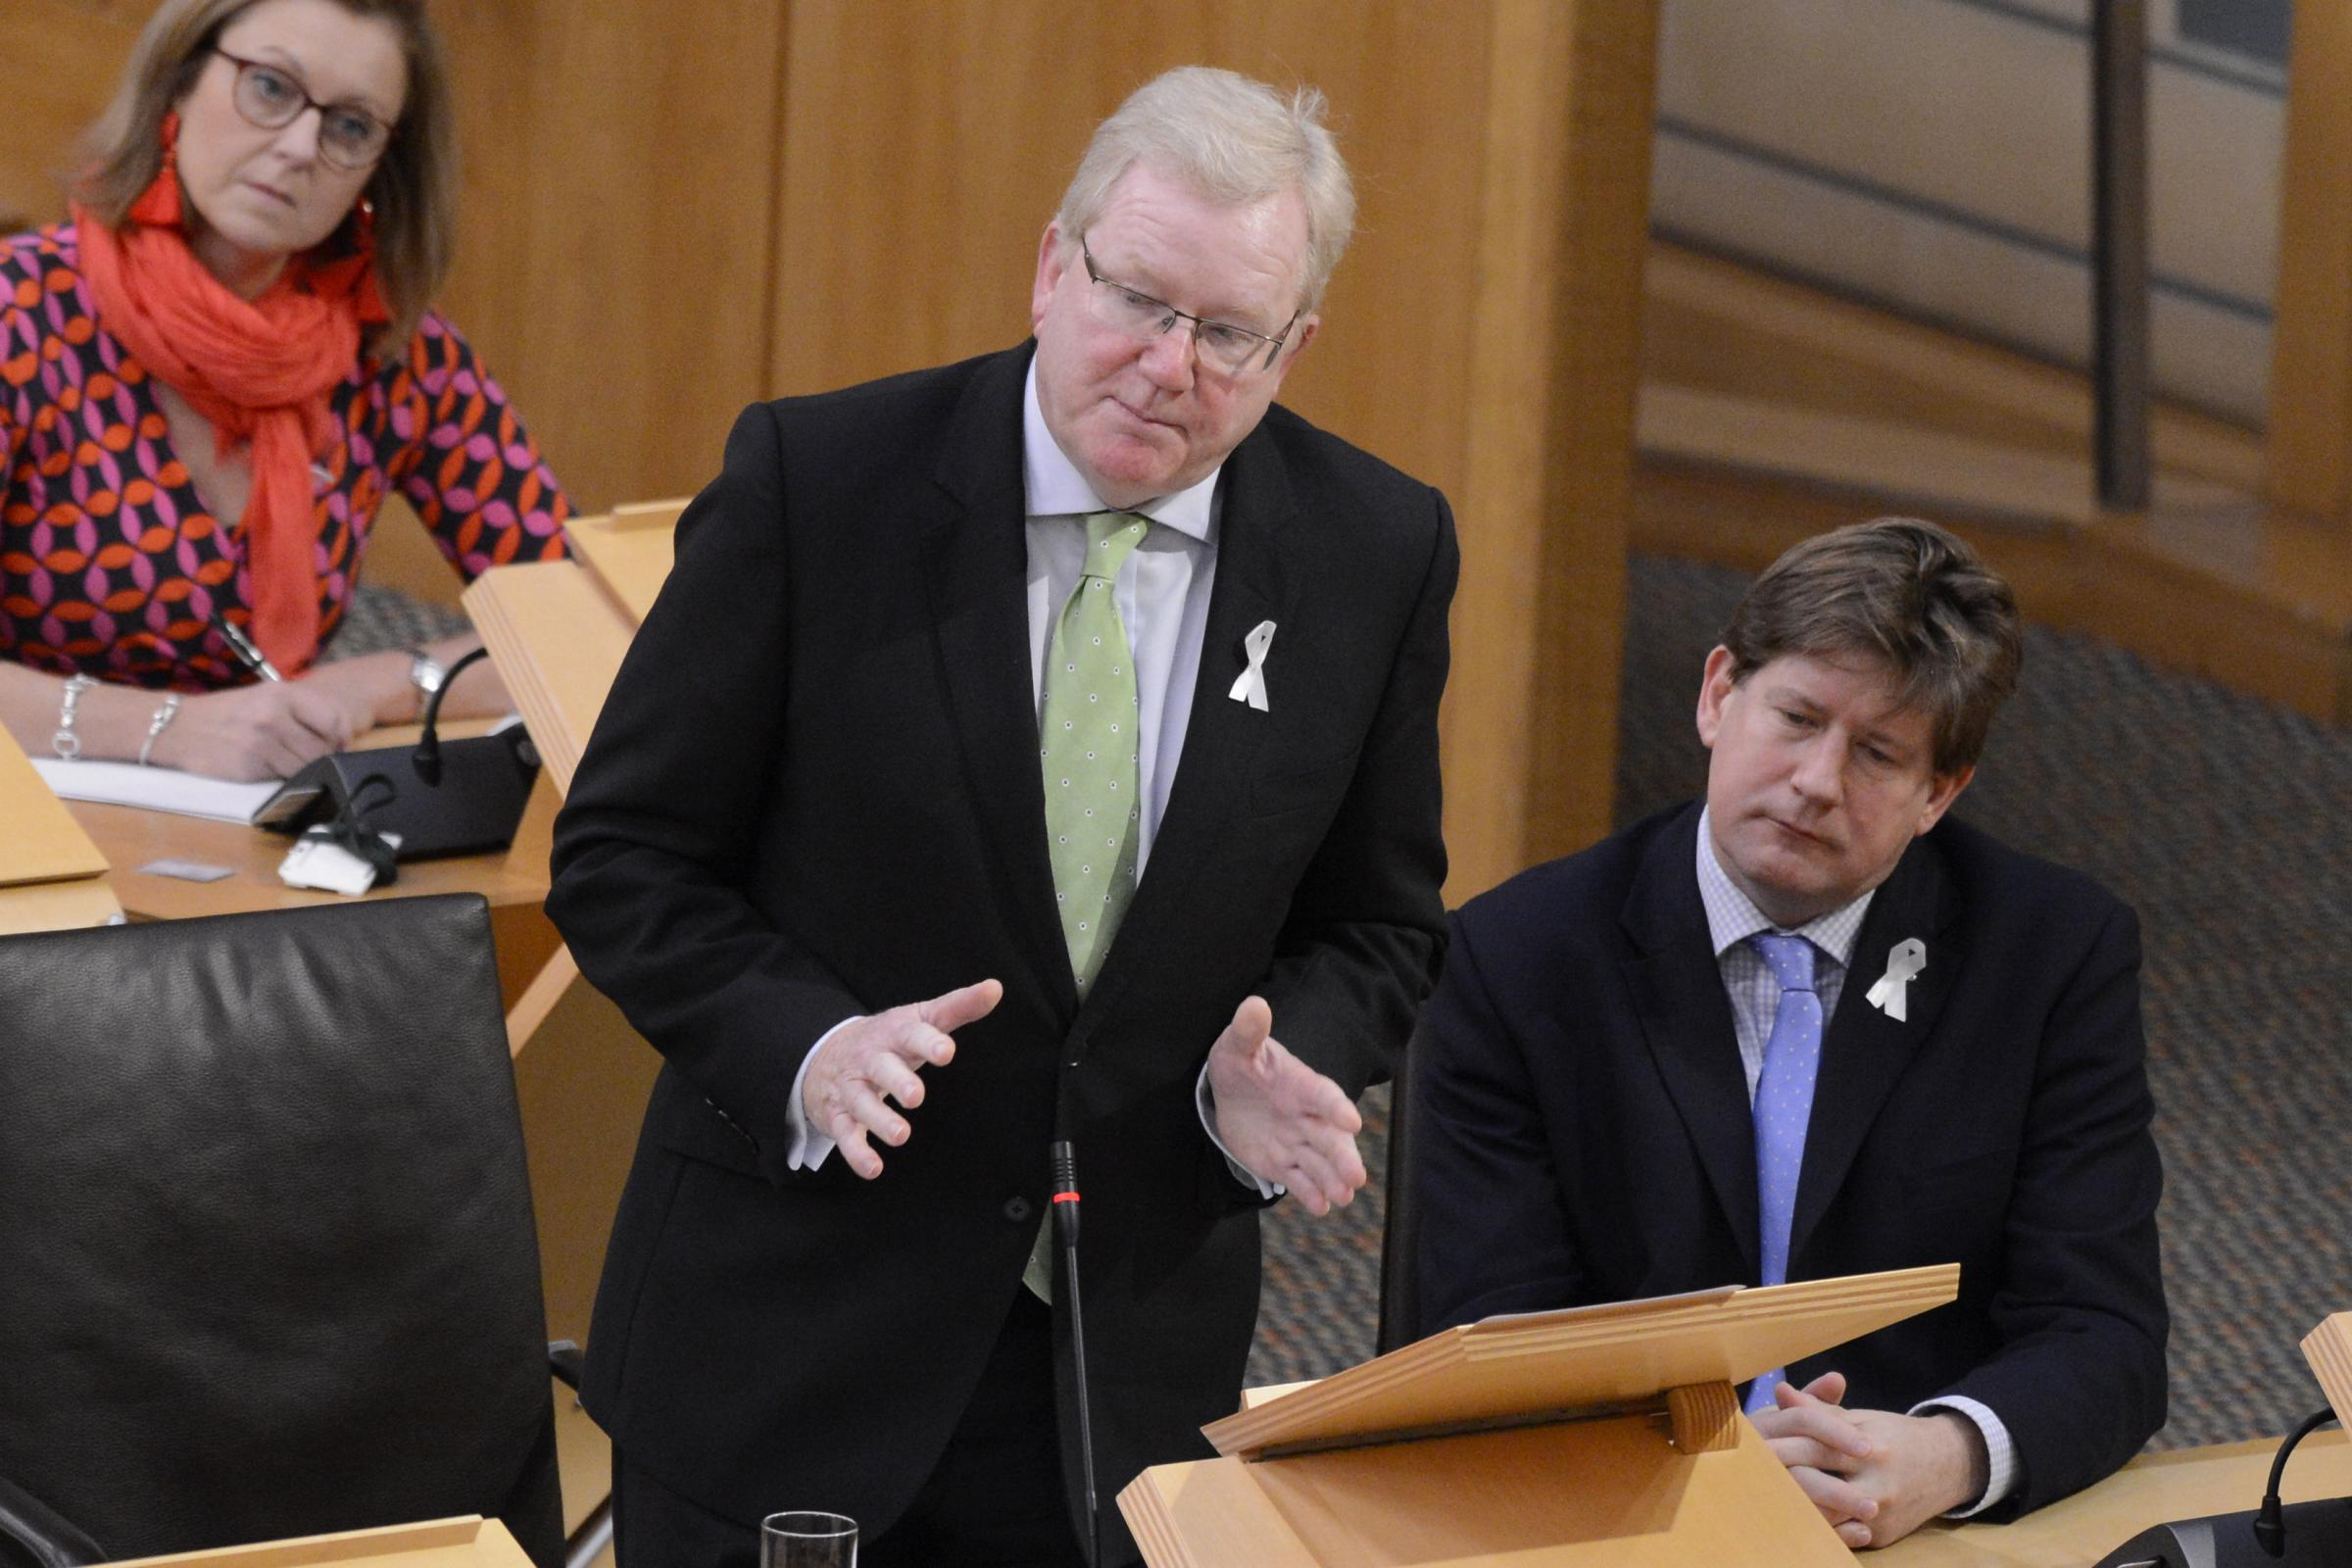 Jackson Carlaw is currently standing in as Scottish Conservative leader